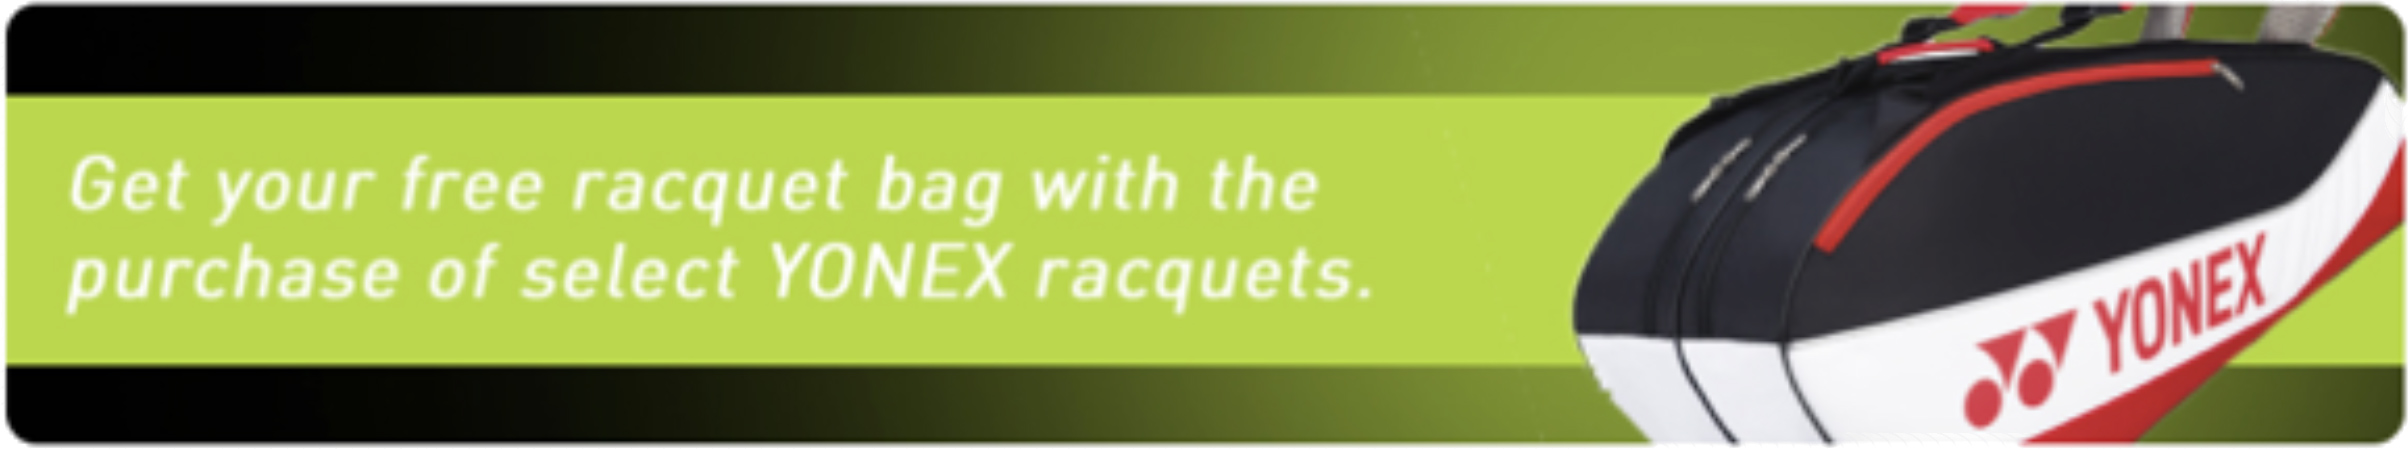 Get a Free Bag with purchase of Select Yonex Racquets